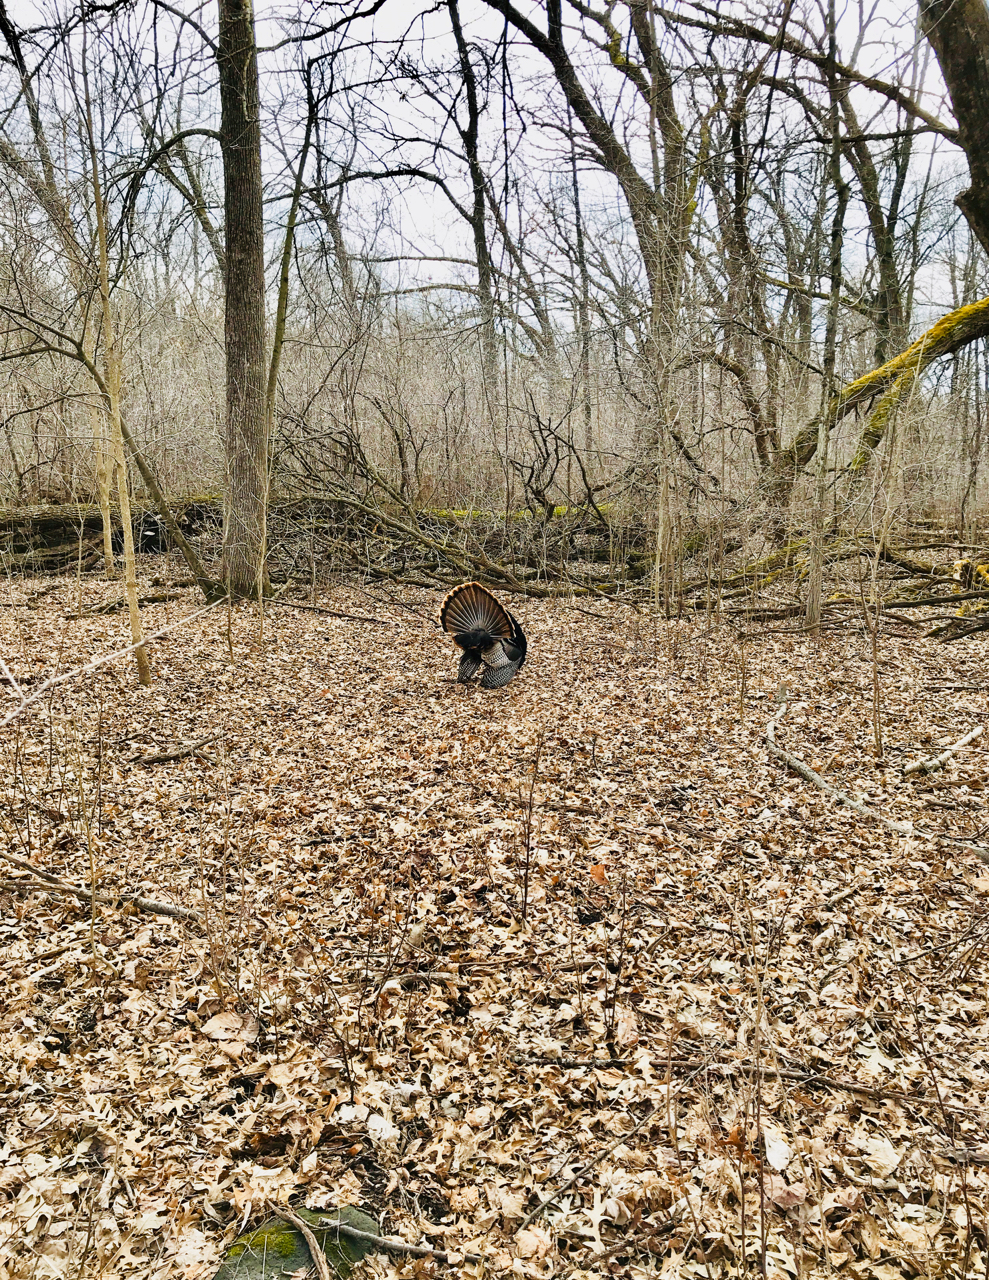 Tom in a Clearing. UW Arboretum. Madison, Wisconsin. April 2018. © William D. Walker